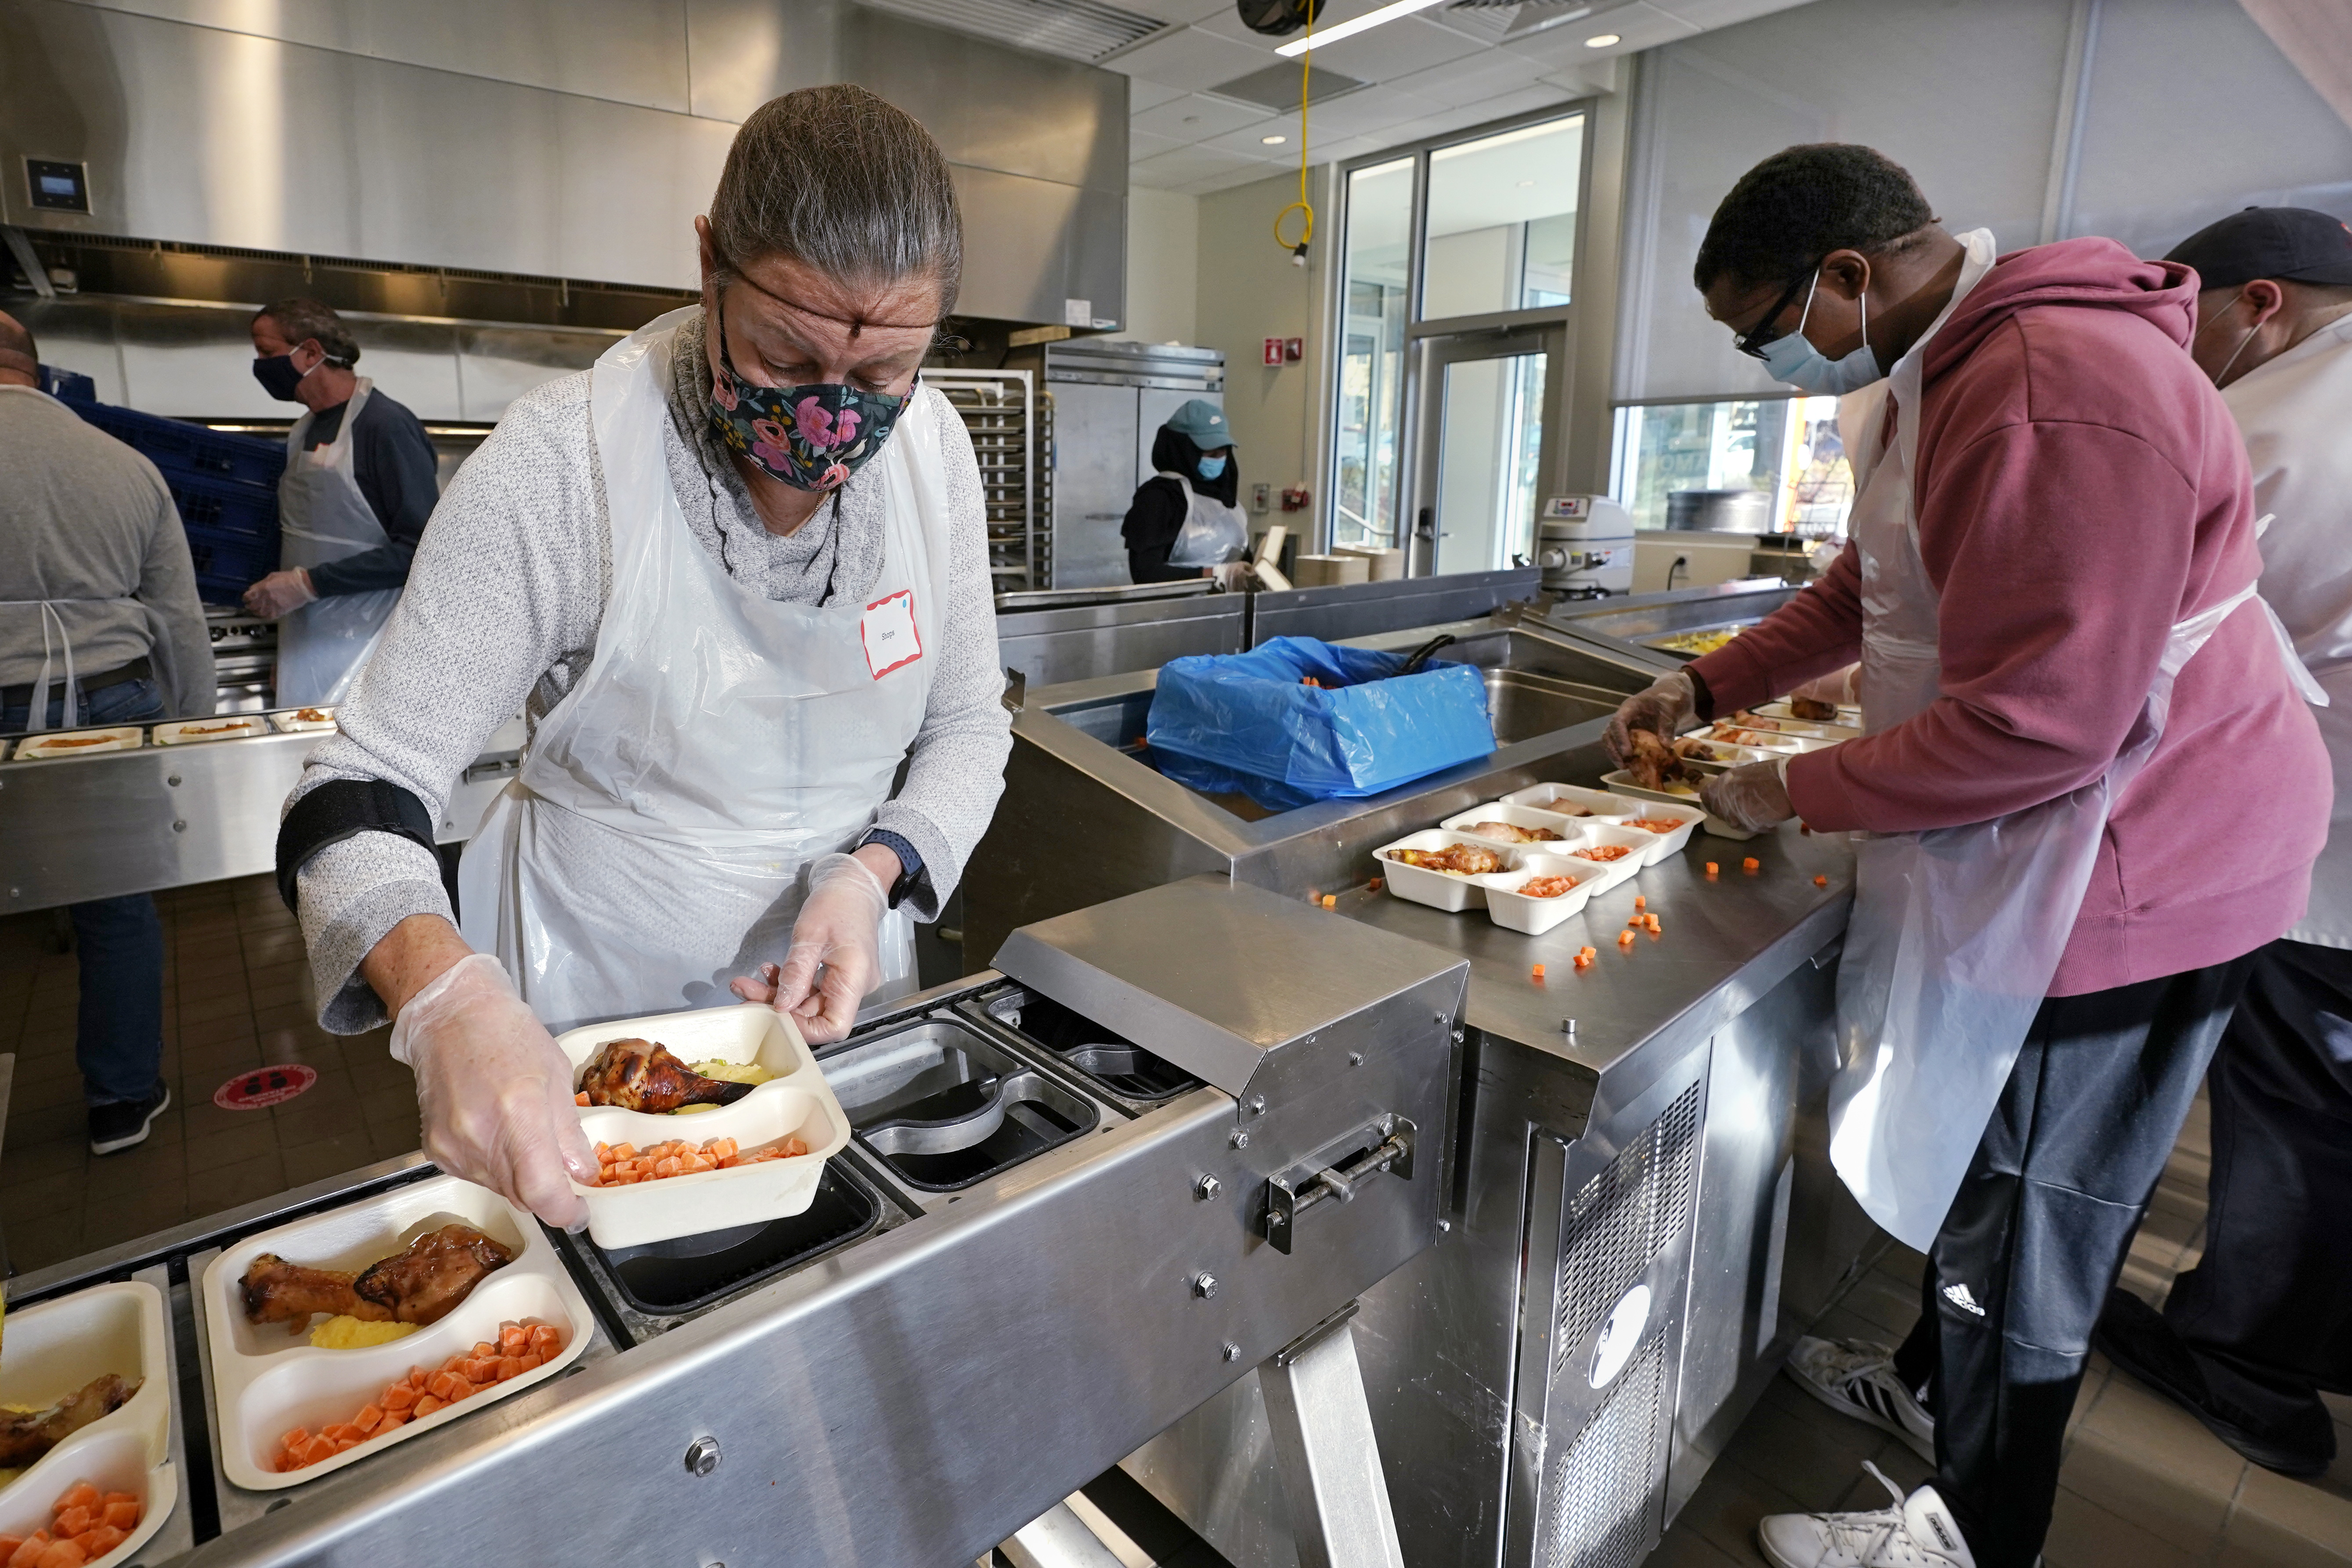 Volunteers Sheeran Howard (left) and Ibrahim Bahrr package meals at Community Servings, which prepares and delivers scratch-made, medically tailored meals to people with severe illnesses in Boston's Jamaica Plain neighborhood. Insurers first started covering Community Servings meals about five years ago, and CEO David Waters says they now cover close to 40%.